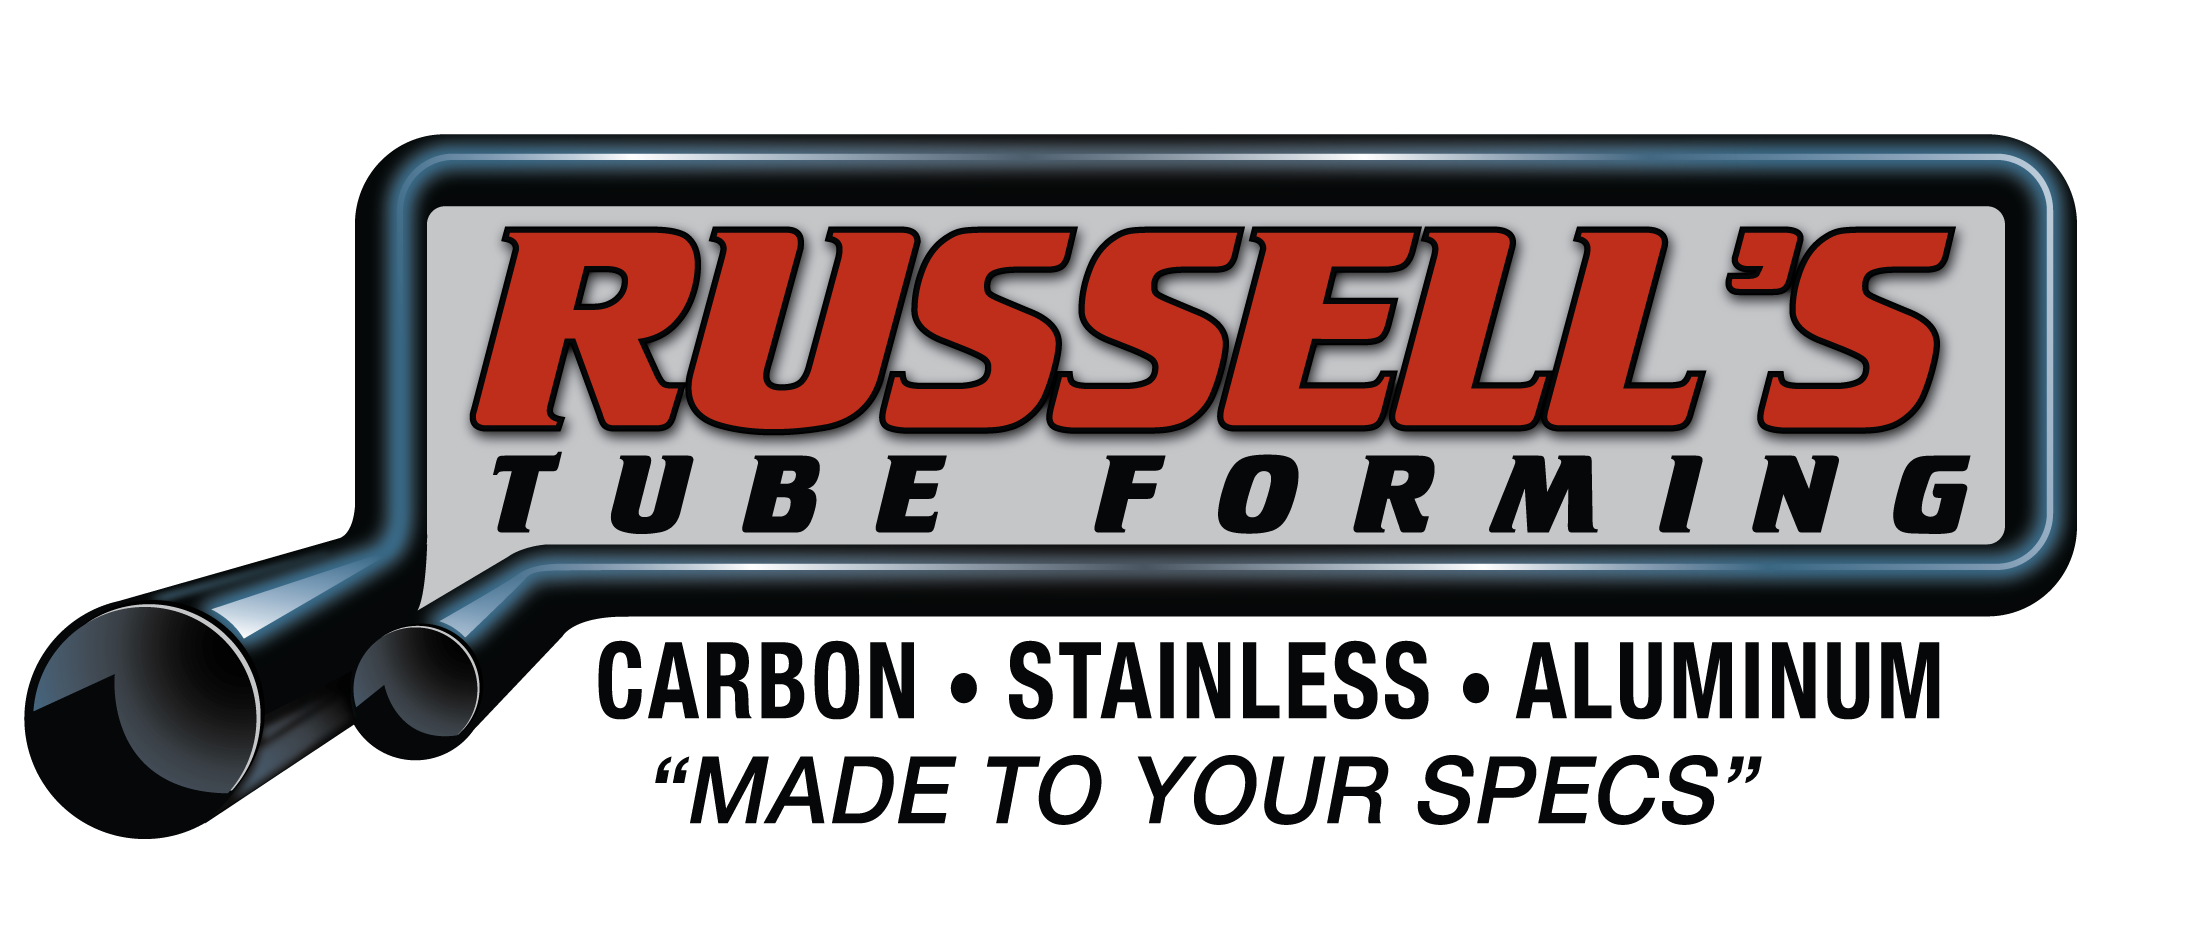 Rotary Mandrel Metal Tube Bending Services - Russell's Tube Forming